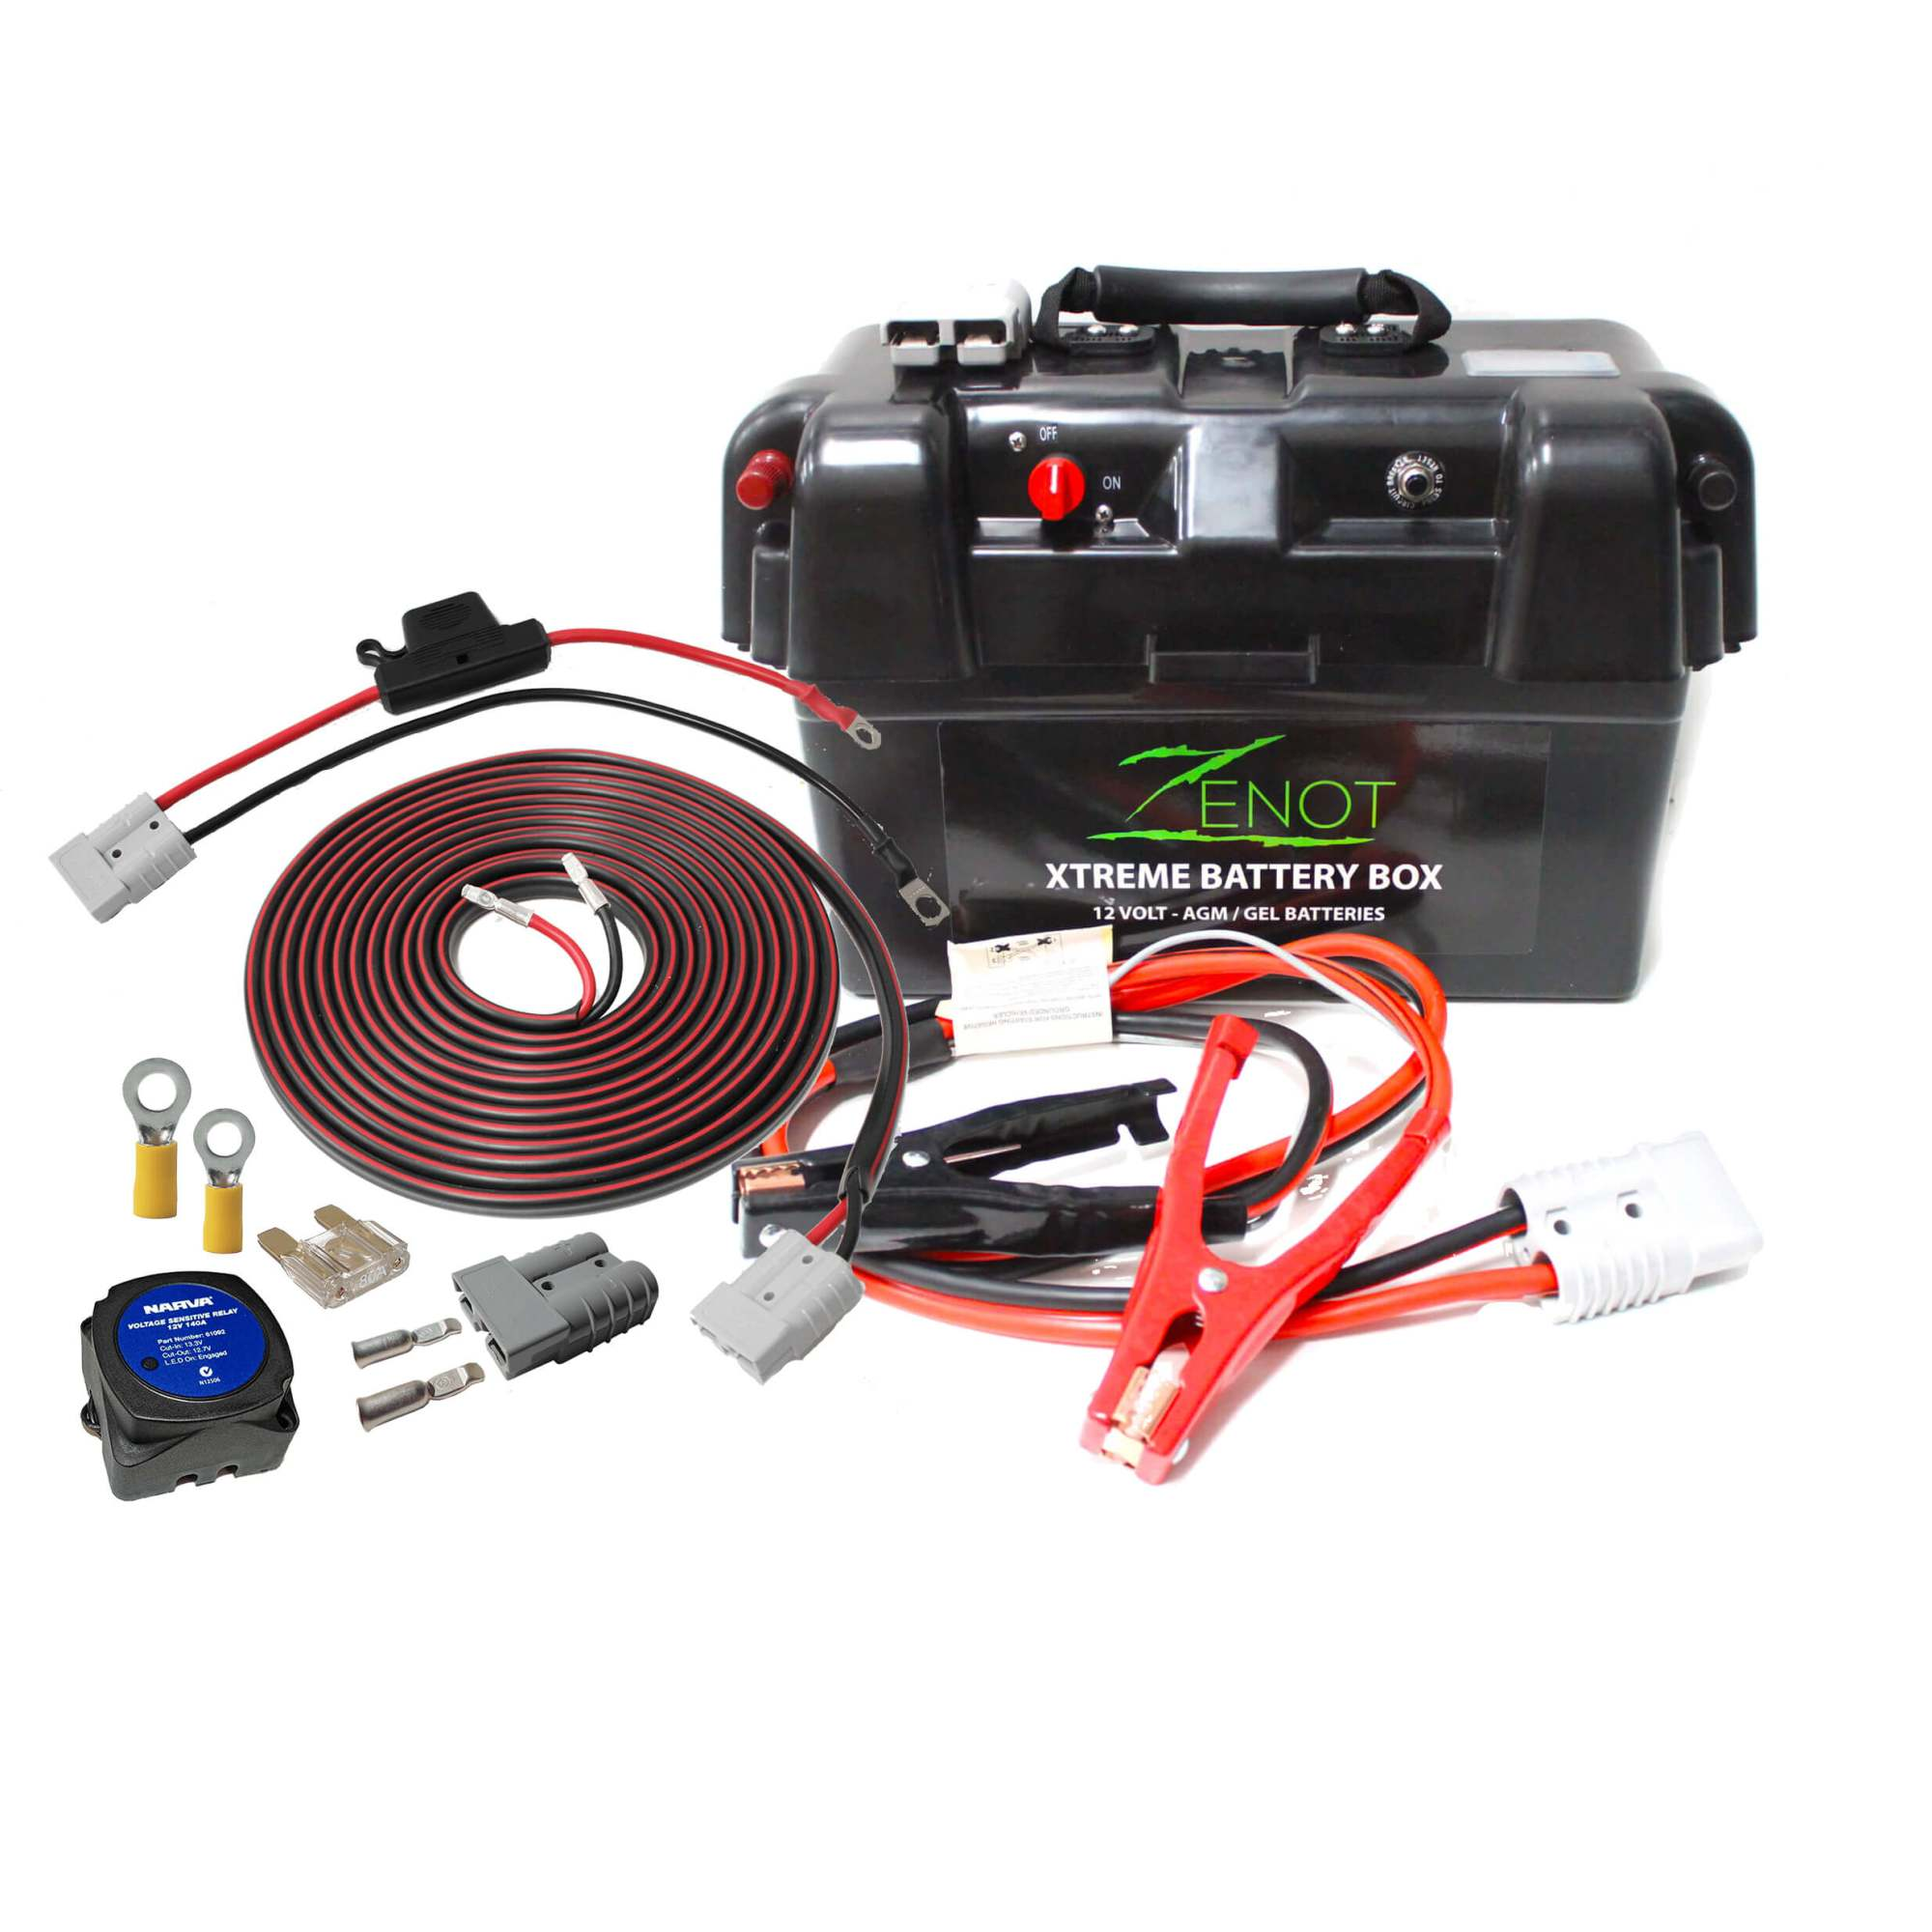 hight resolution of zenot extreme dual battery box jump starter vehicle wiring kit all 12 volt